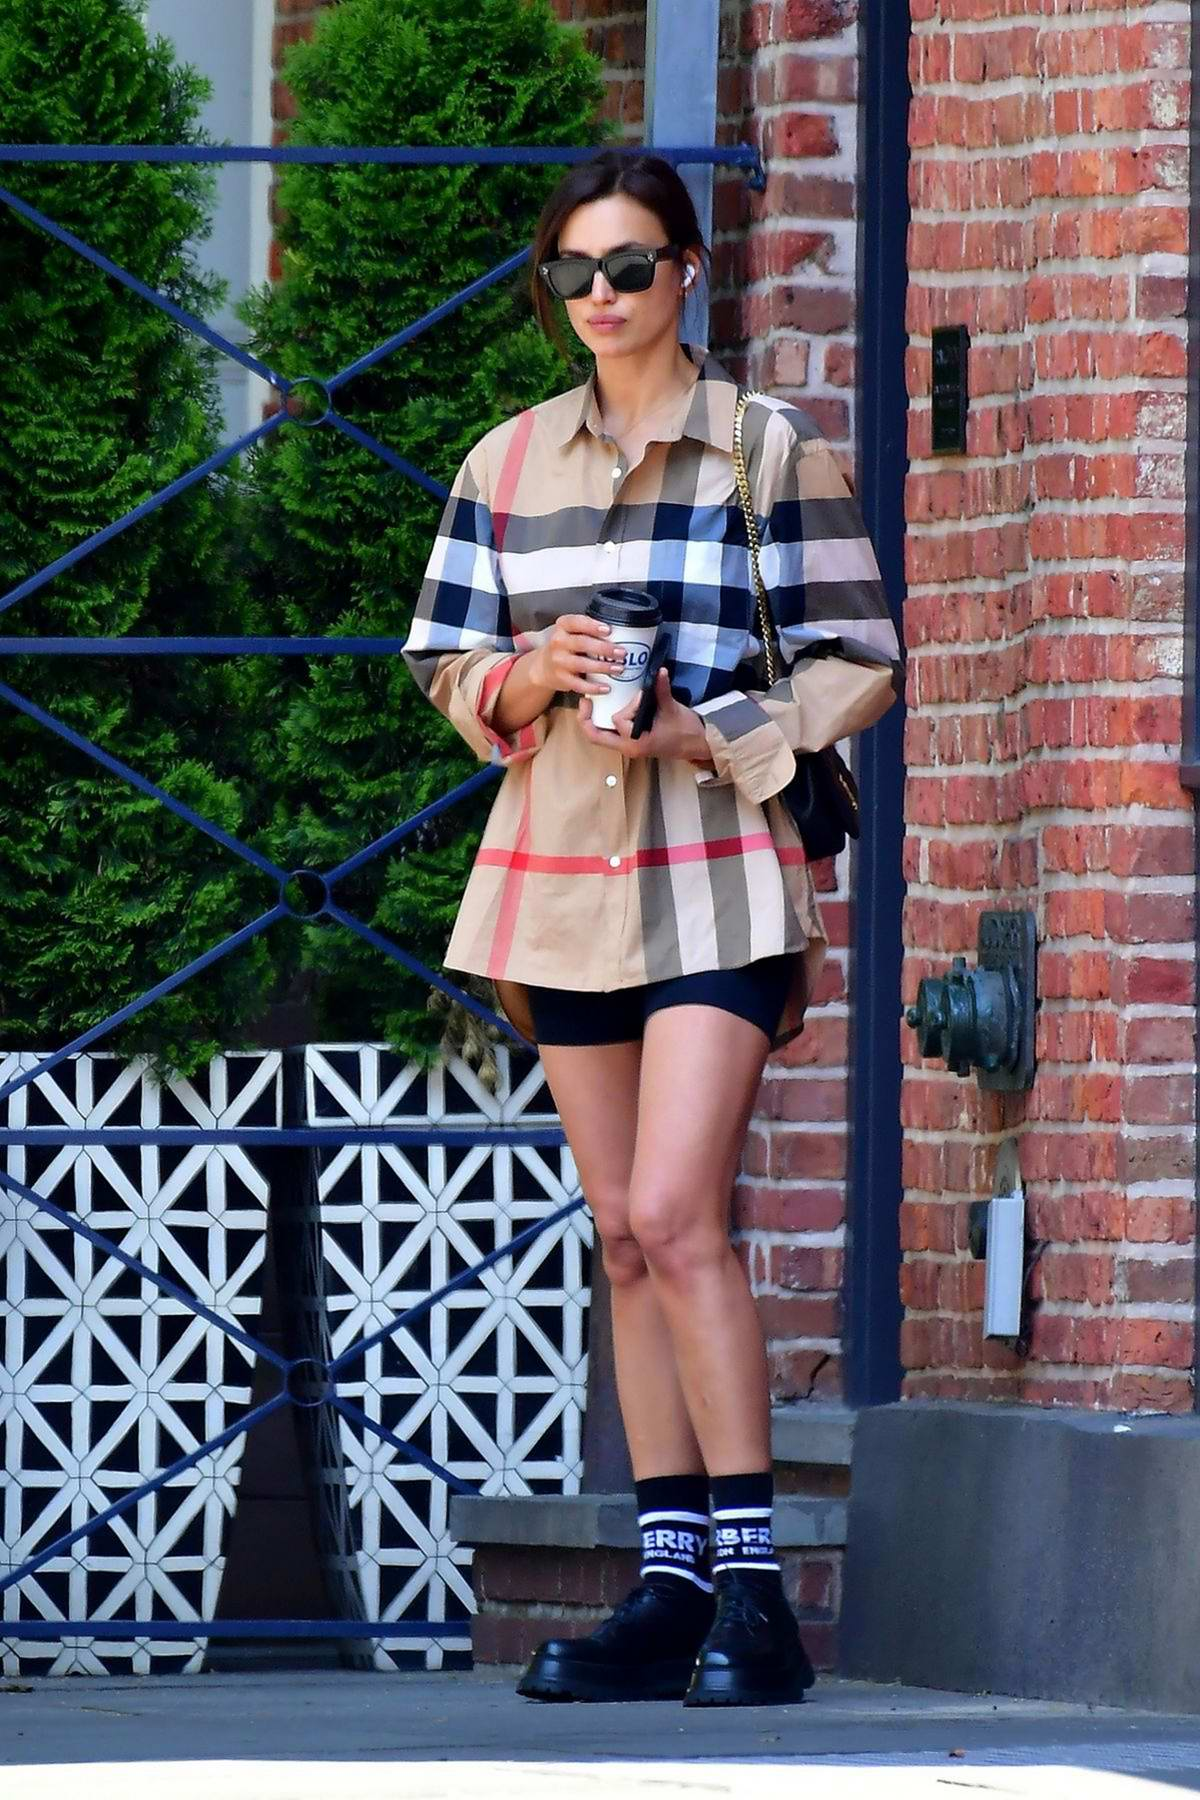 Irina Shayk keeps it chic in a Burberry shirt and black shorts while visiting Bradley Cooper's home in New York City